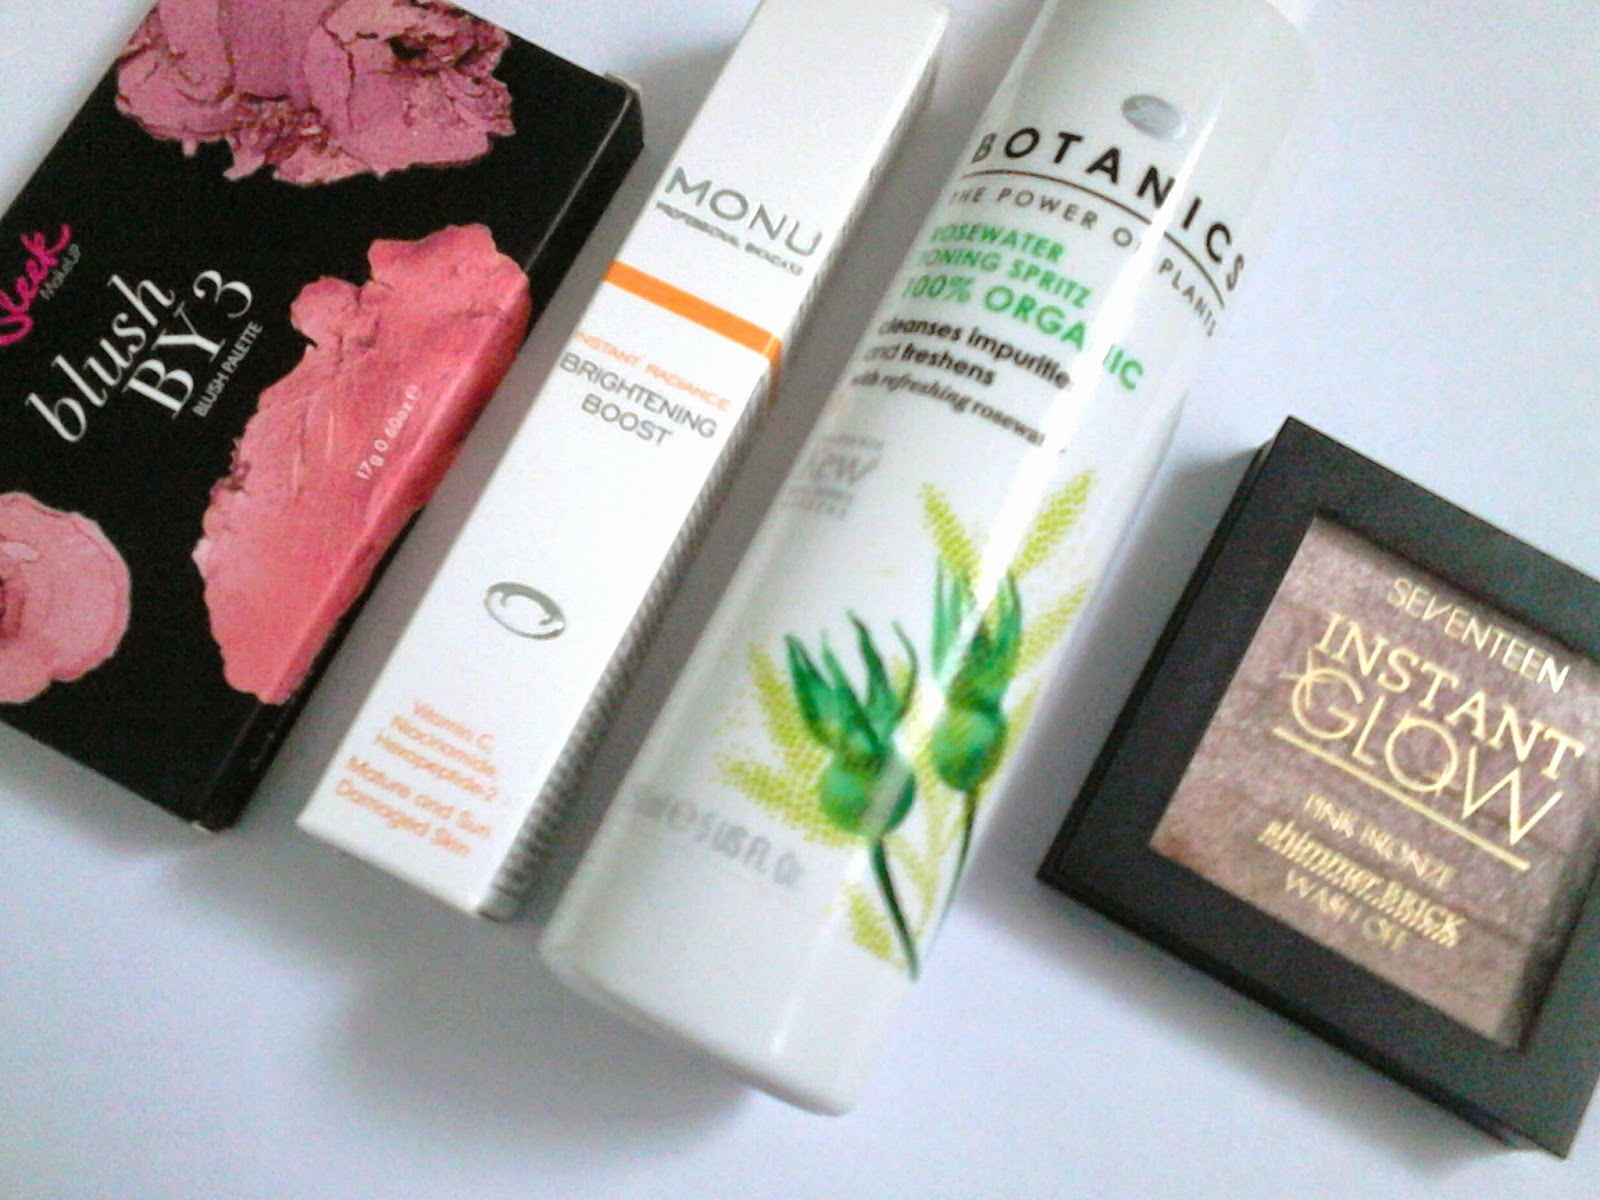 Beauty Products on Trial